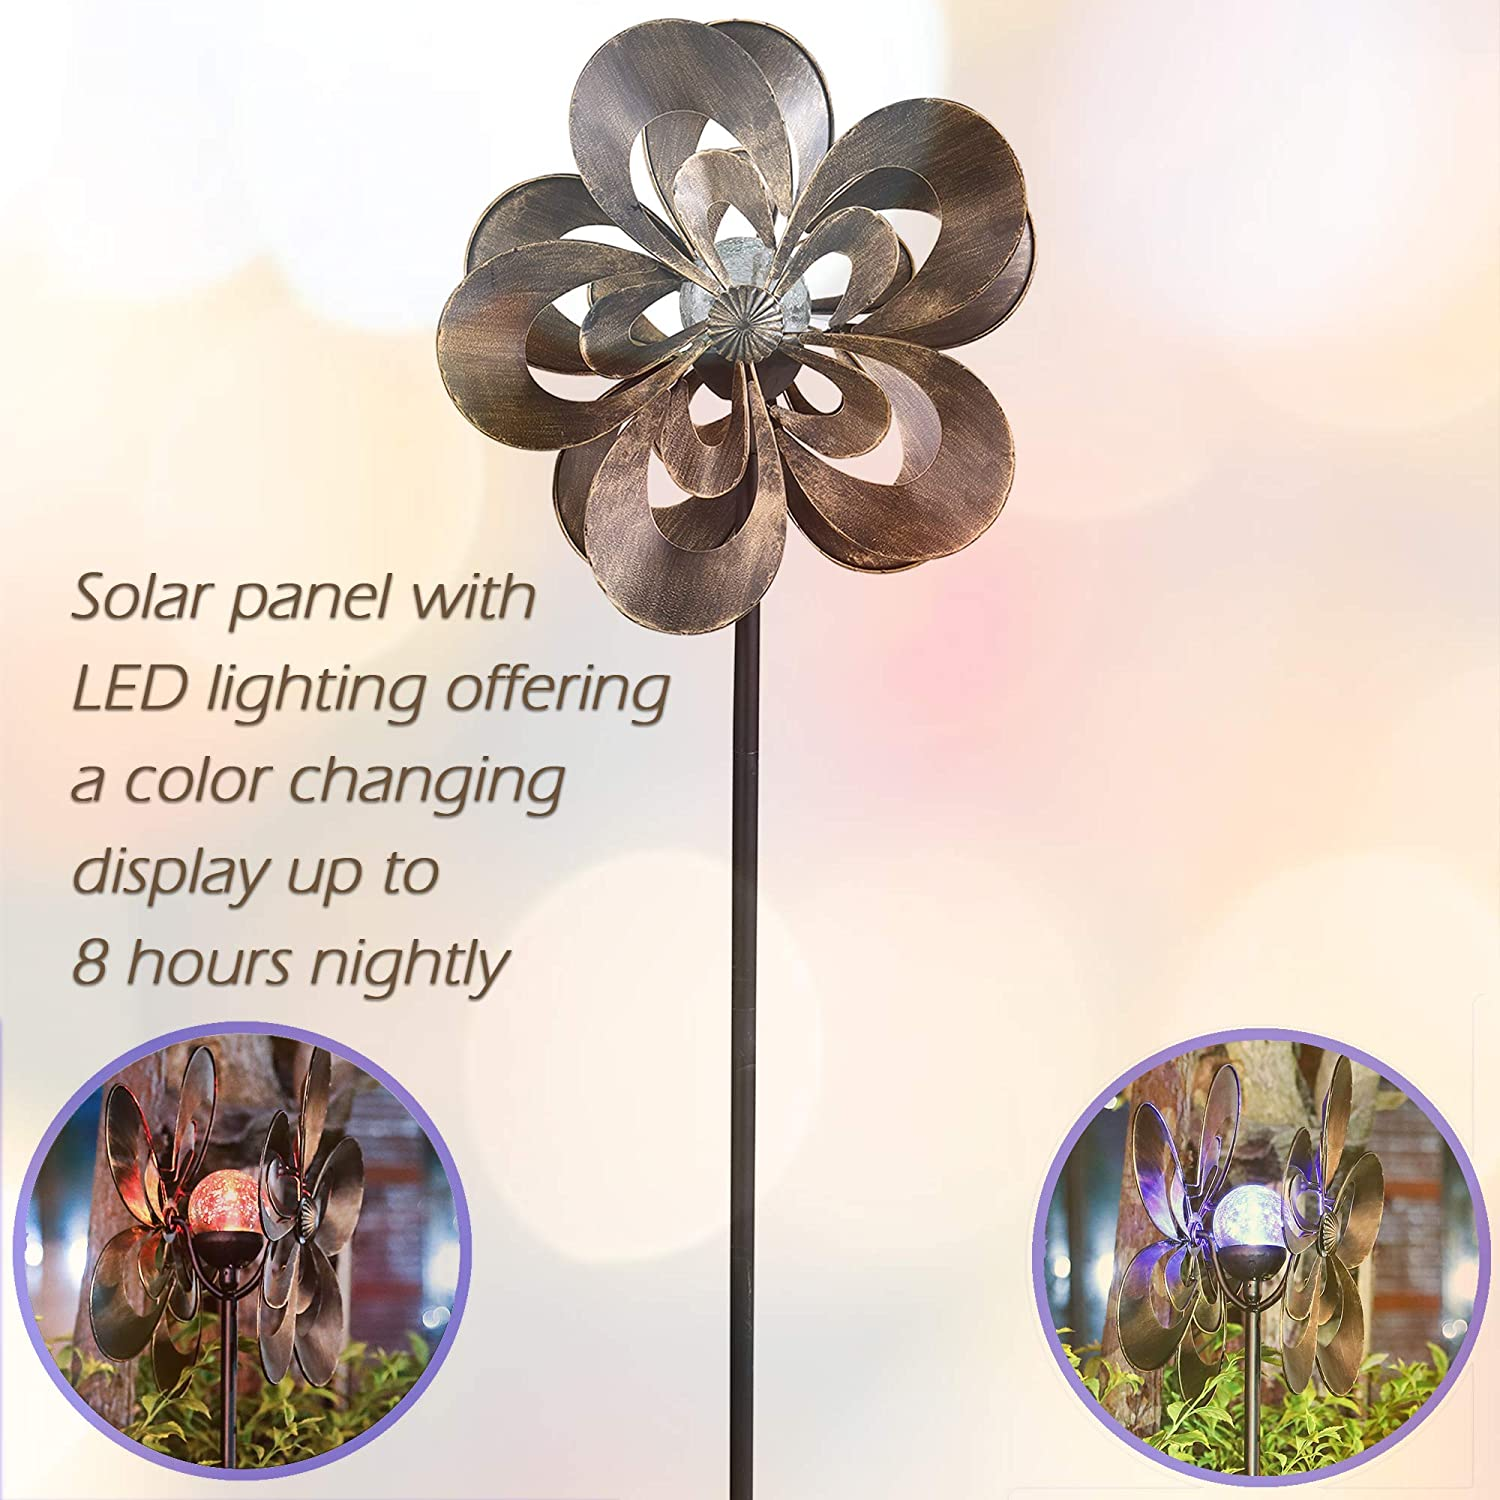 Solar Wind Spinner Magnolia Multi-Color Seasonal LED Lighting Solar Powered Glass Ball with Kinetic Wind Spinner Dual Direction for Patio Lawn & Garden